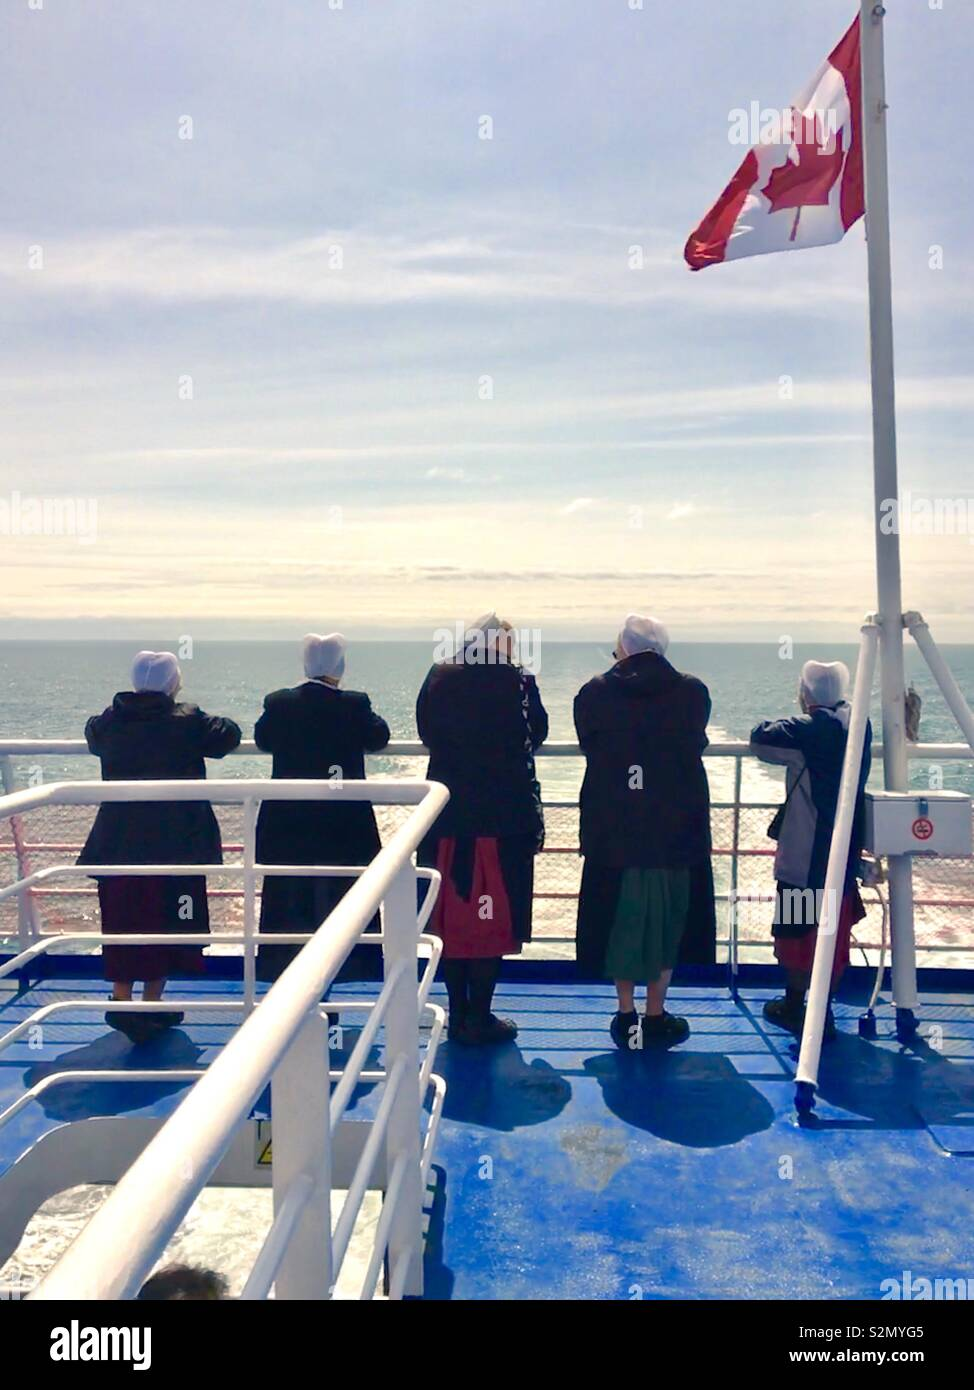 Amish women on a ferry in Canada Stock Photo